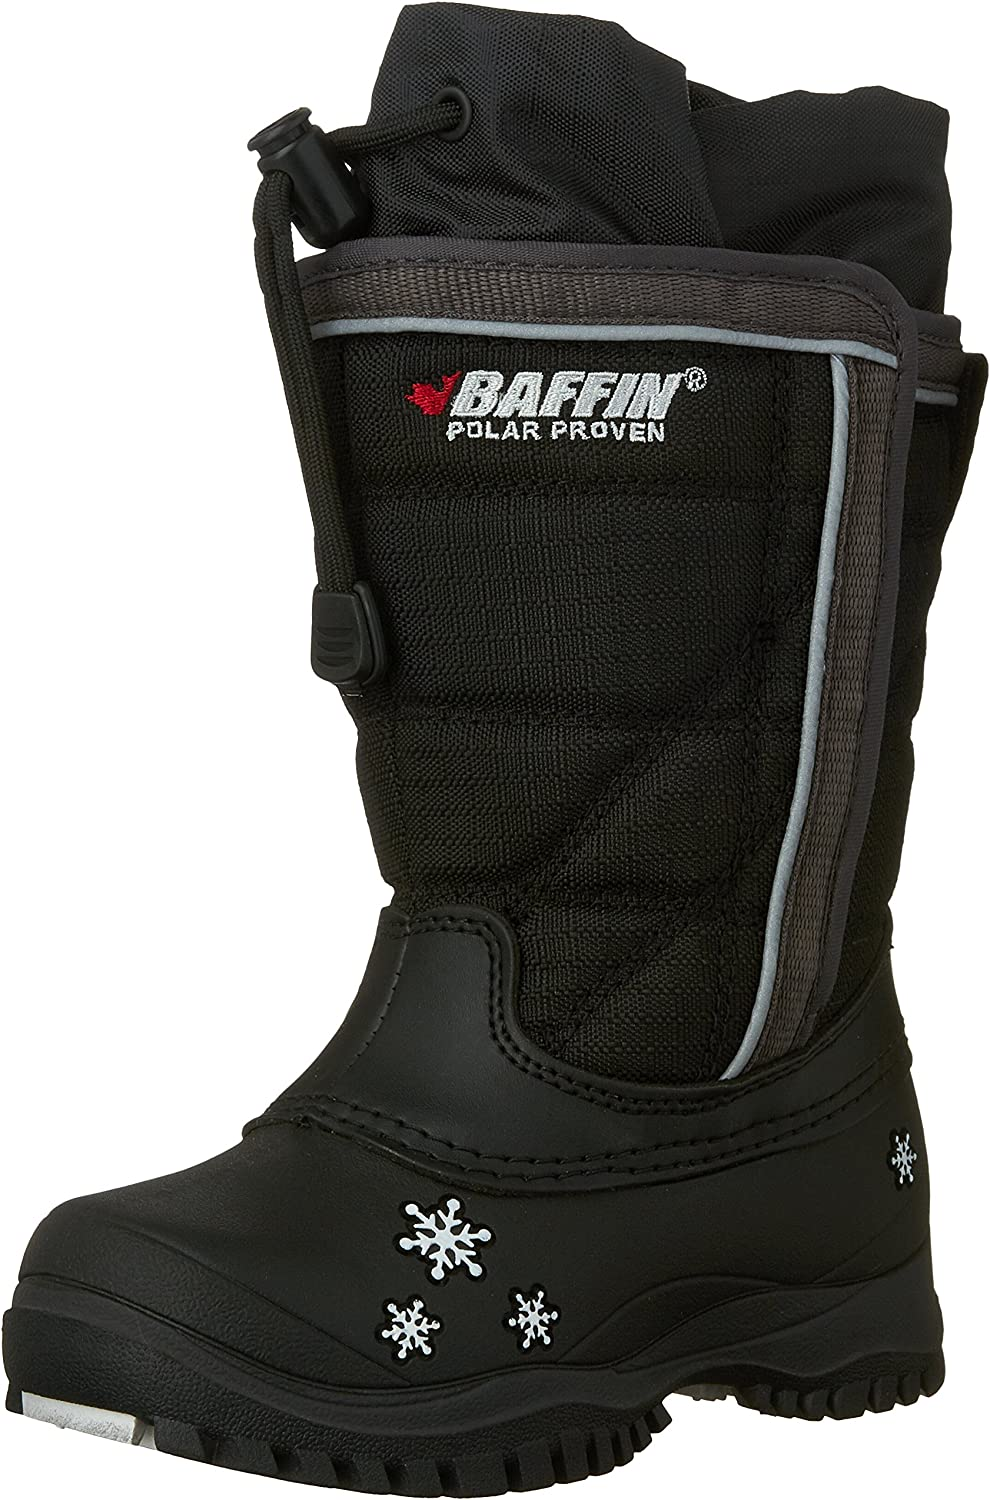 Baffin Cheree Insulated Snow Boot (Toddler/Little Kid/Big Kid)